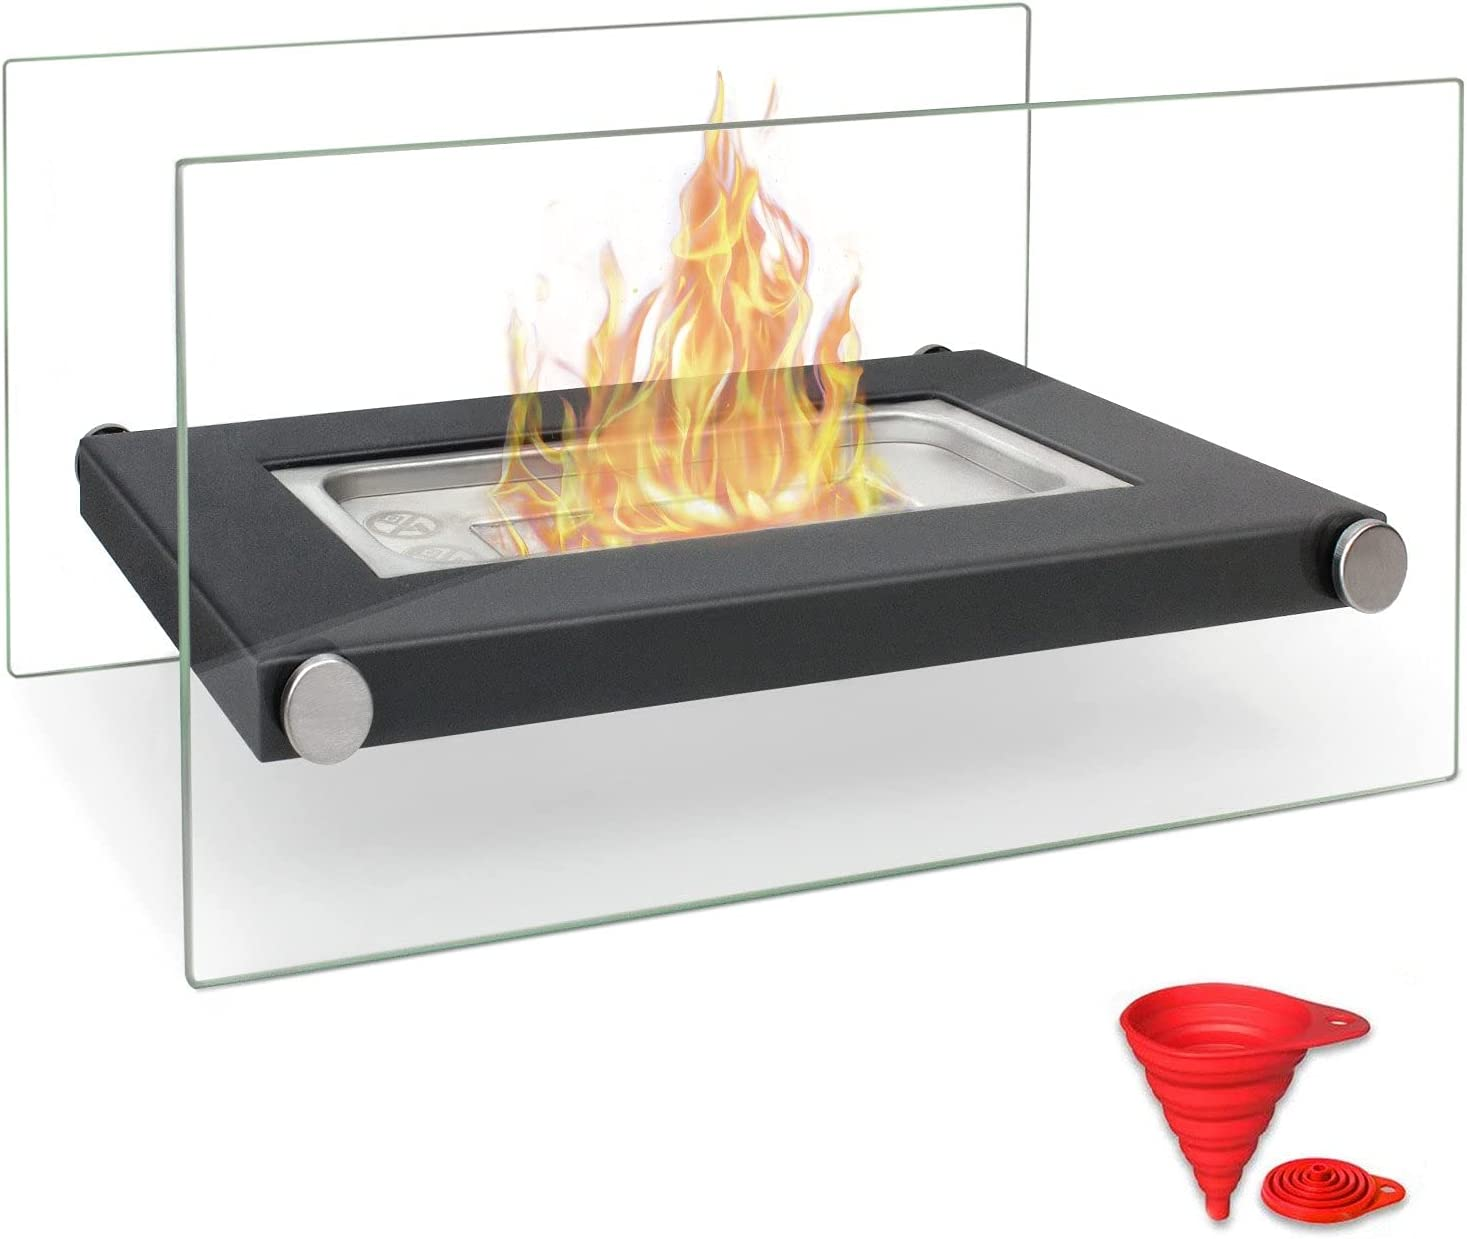 Max 55% OFF BRIAN DANY Tabletop 2021 spring and summer new Ethanol Indoor Outdoor Fireplace for